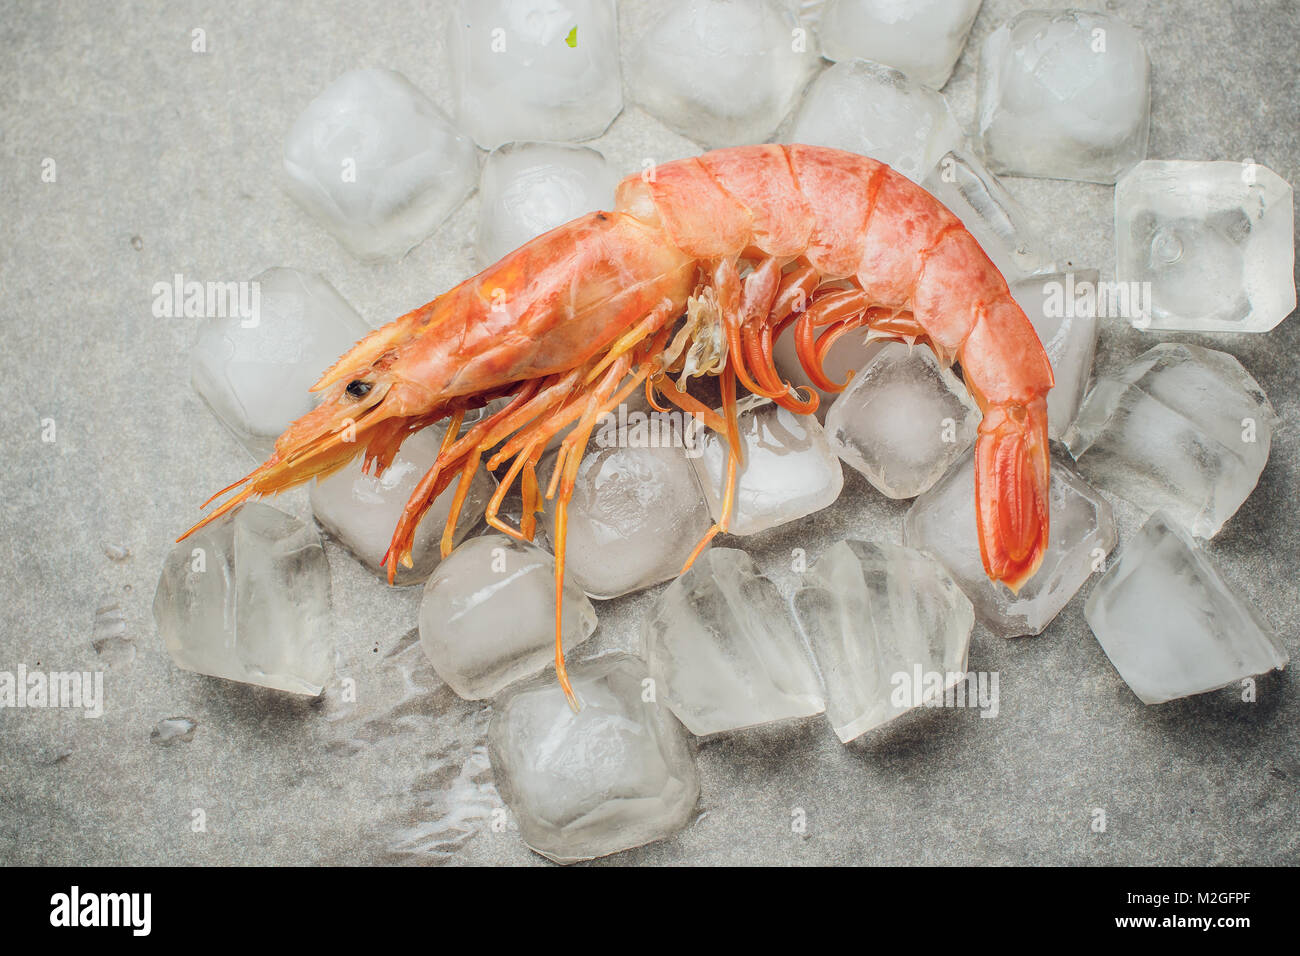 Argentine Raw Shrimp Seafood Food Red Ice Stock Photo 173696615 Alamy